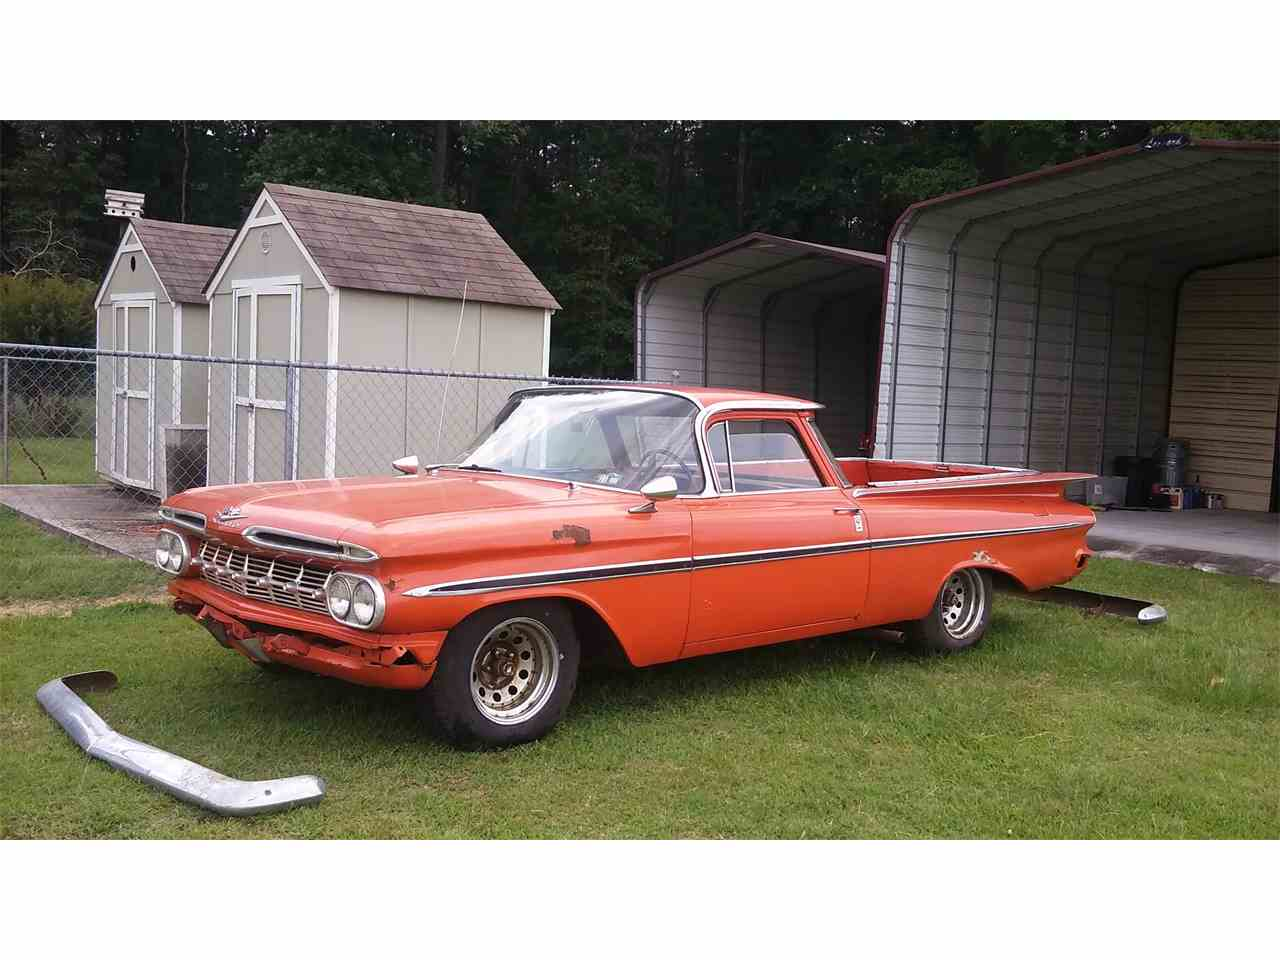 1959 Chevrolet El Camino for Sale on ClassicCars.com - 9 Available